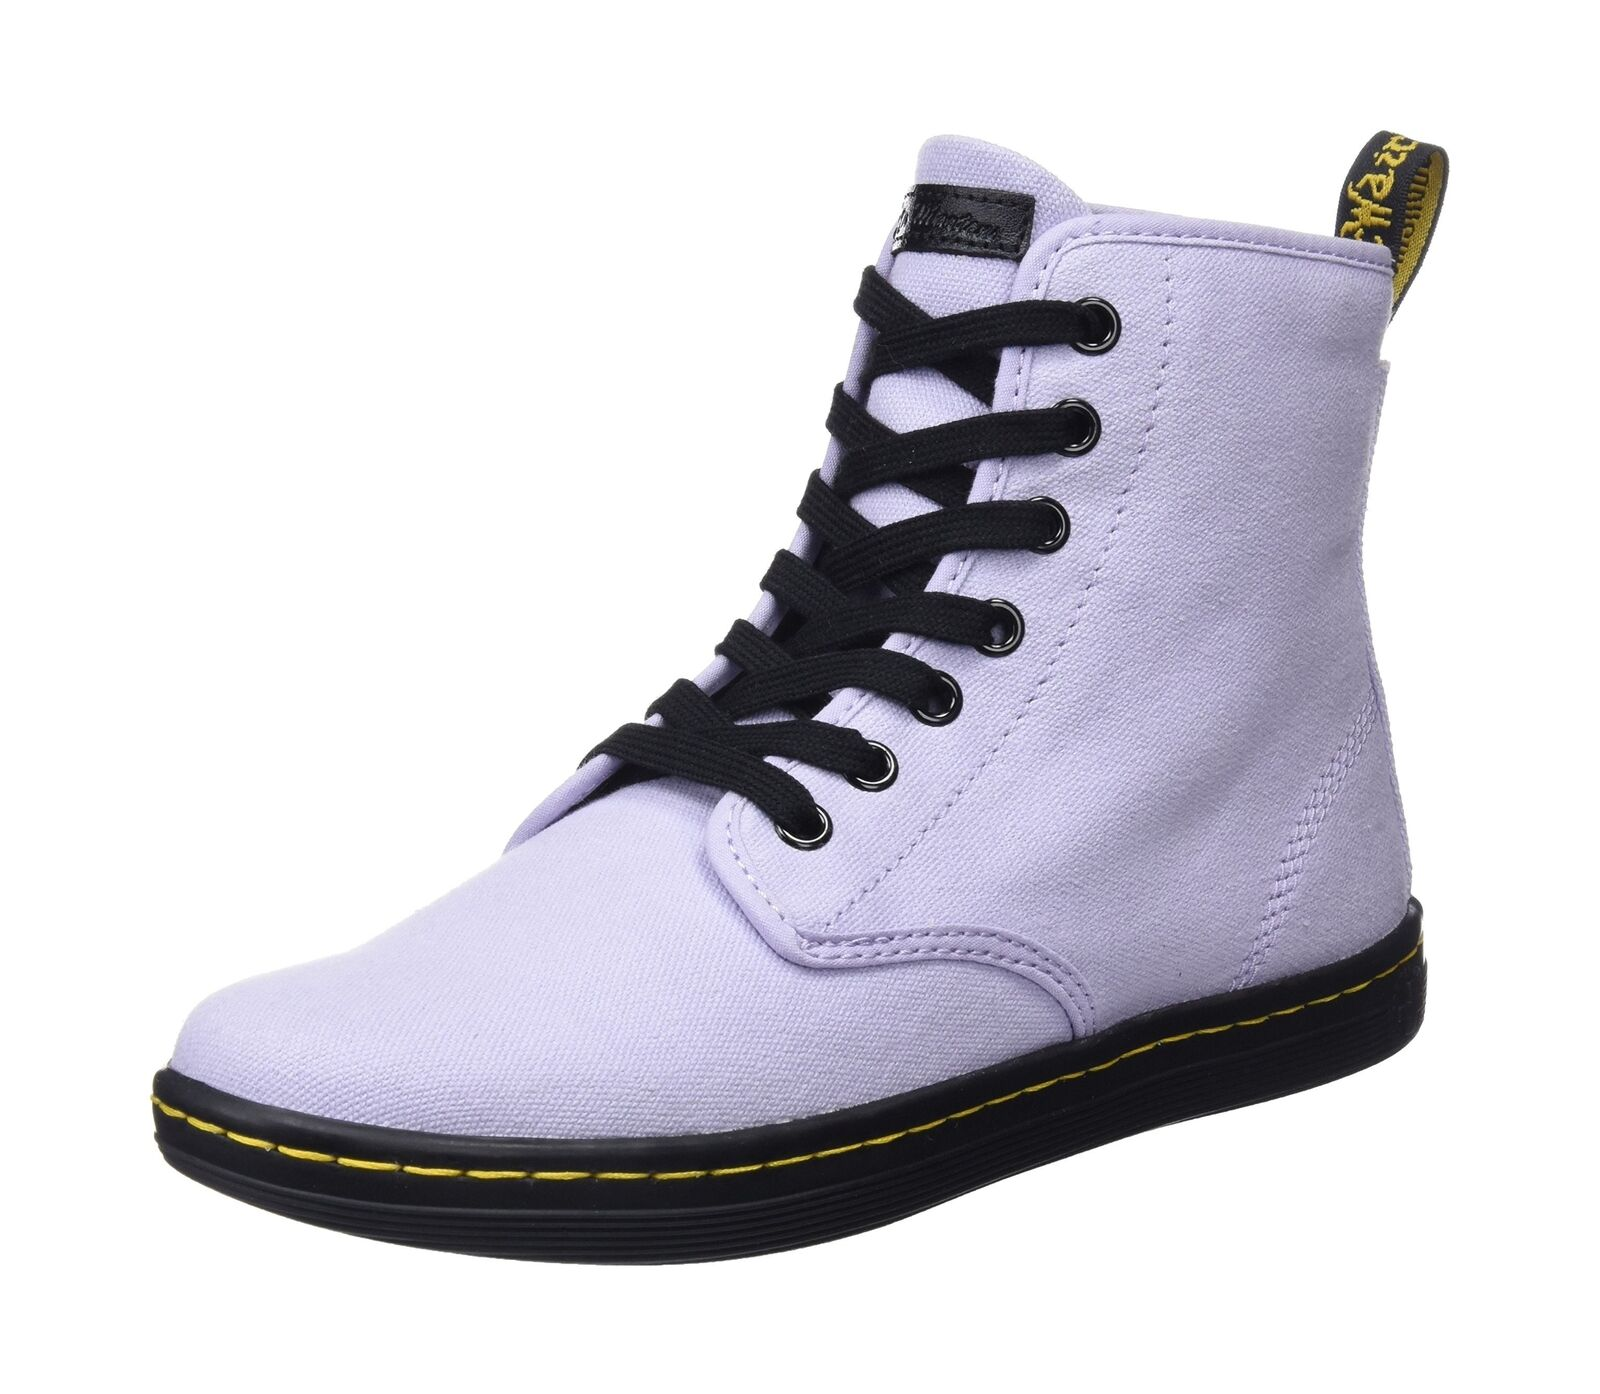 DR. Martens Da Donna Shoreditch Hi-Top Scarpe Da Ginnastica Viola (viola Heather 513) 6 UK